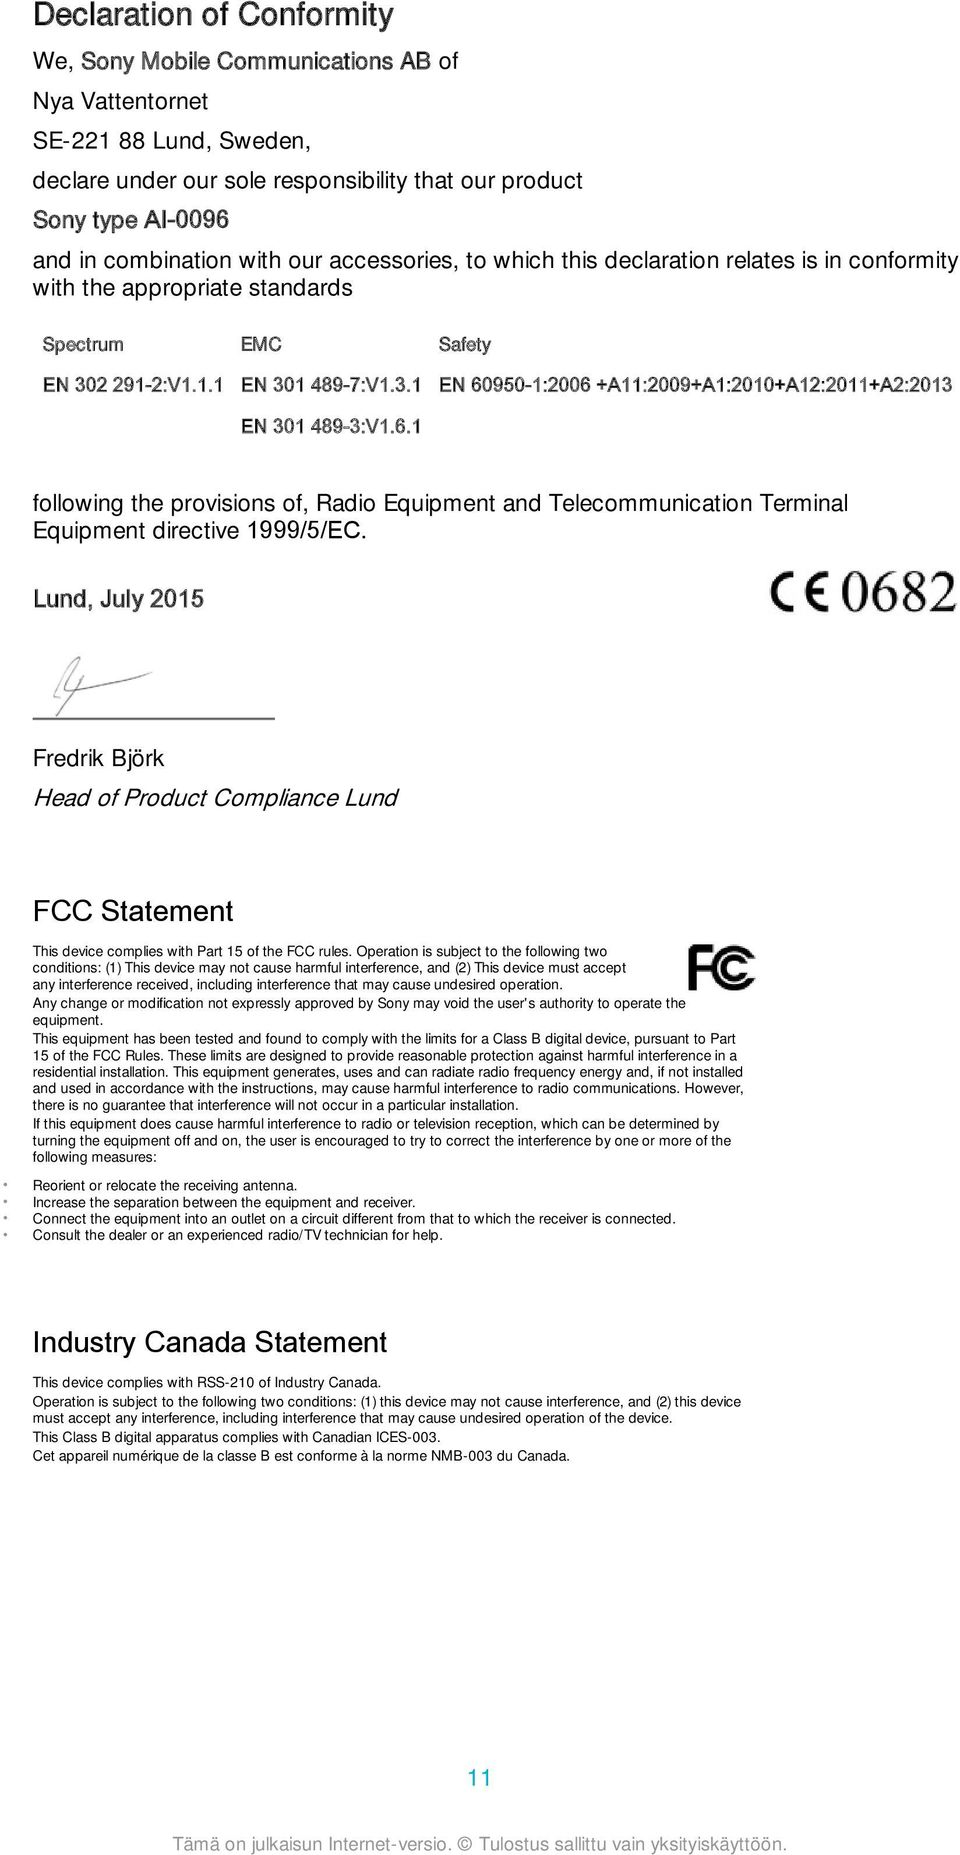 6.1 following the provisions of, Radio Equipment and Telecommunication Terminal Equipment directive 1999/5/EC.